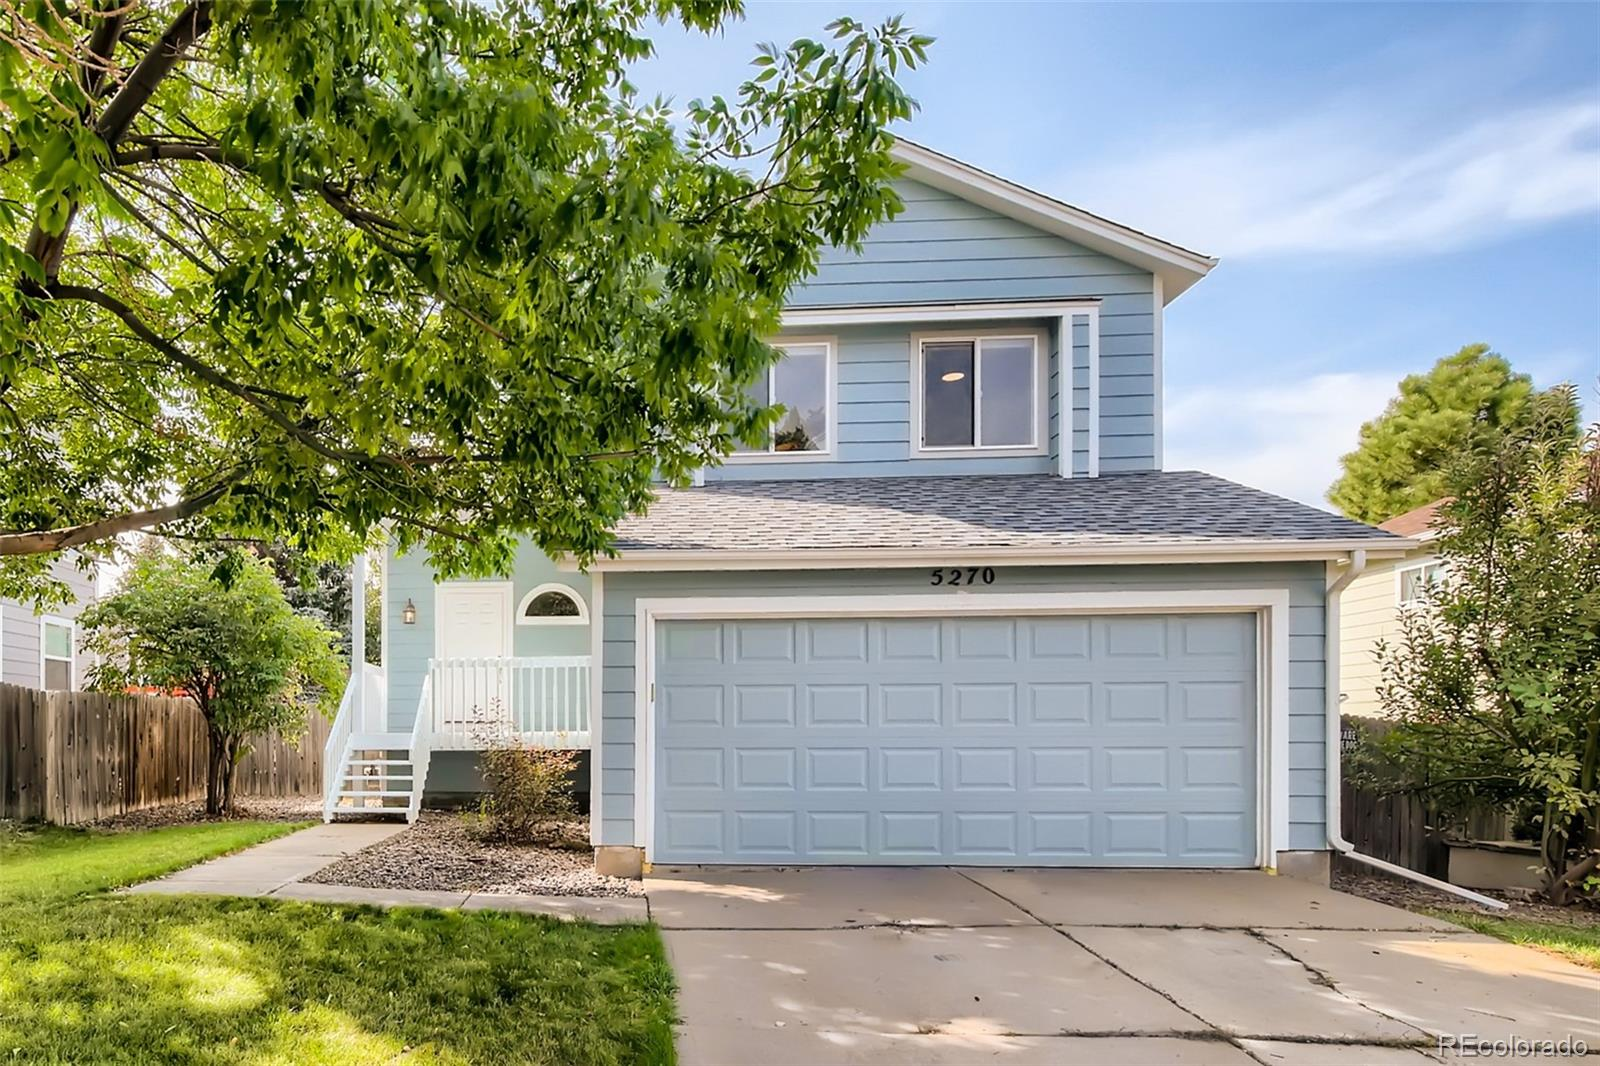 This charming home in the beautiful Founders Village will not disappoint.  Wood flooring on the main floor and second level.  Plenty of natural light with high, vaulted ceiling and spacious kitchen.  Large crawlspace can be used for storage.  Close to schools, park, and pool.